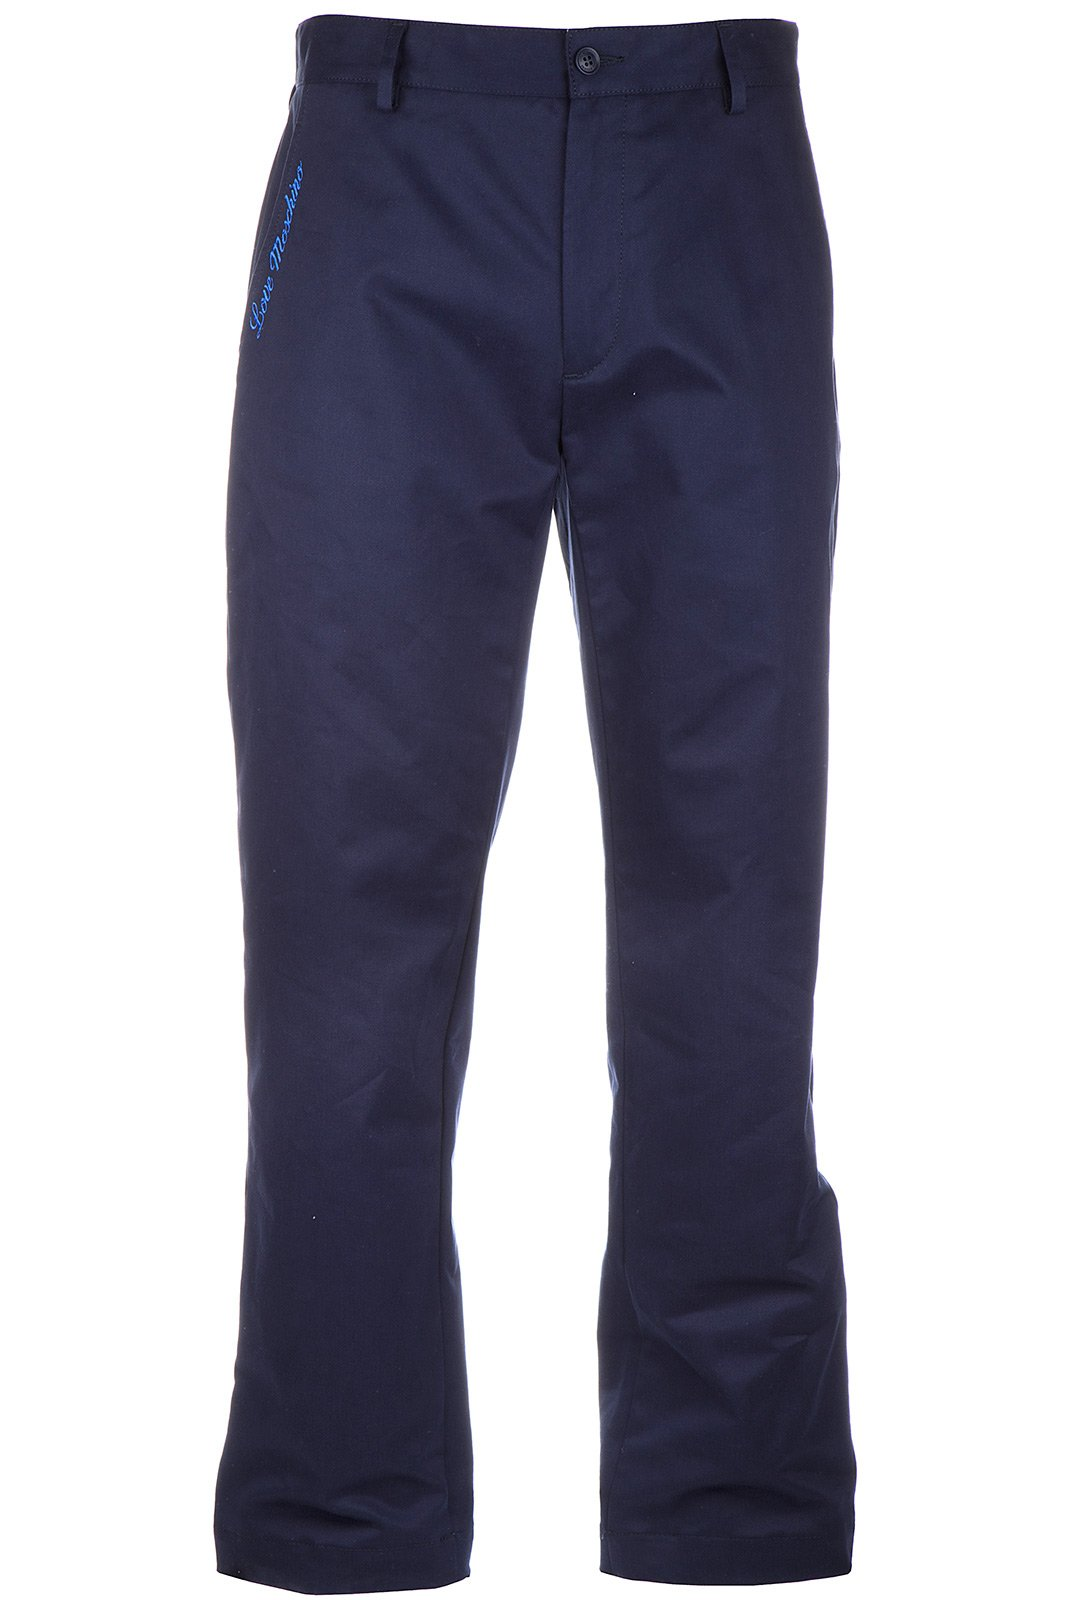 Love Moschino Men's Trousers Pants Blu US Size 48 (US 32) M P 598 01 S 2754 Y6